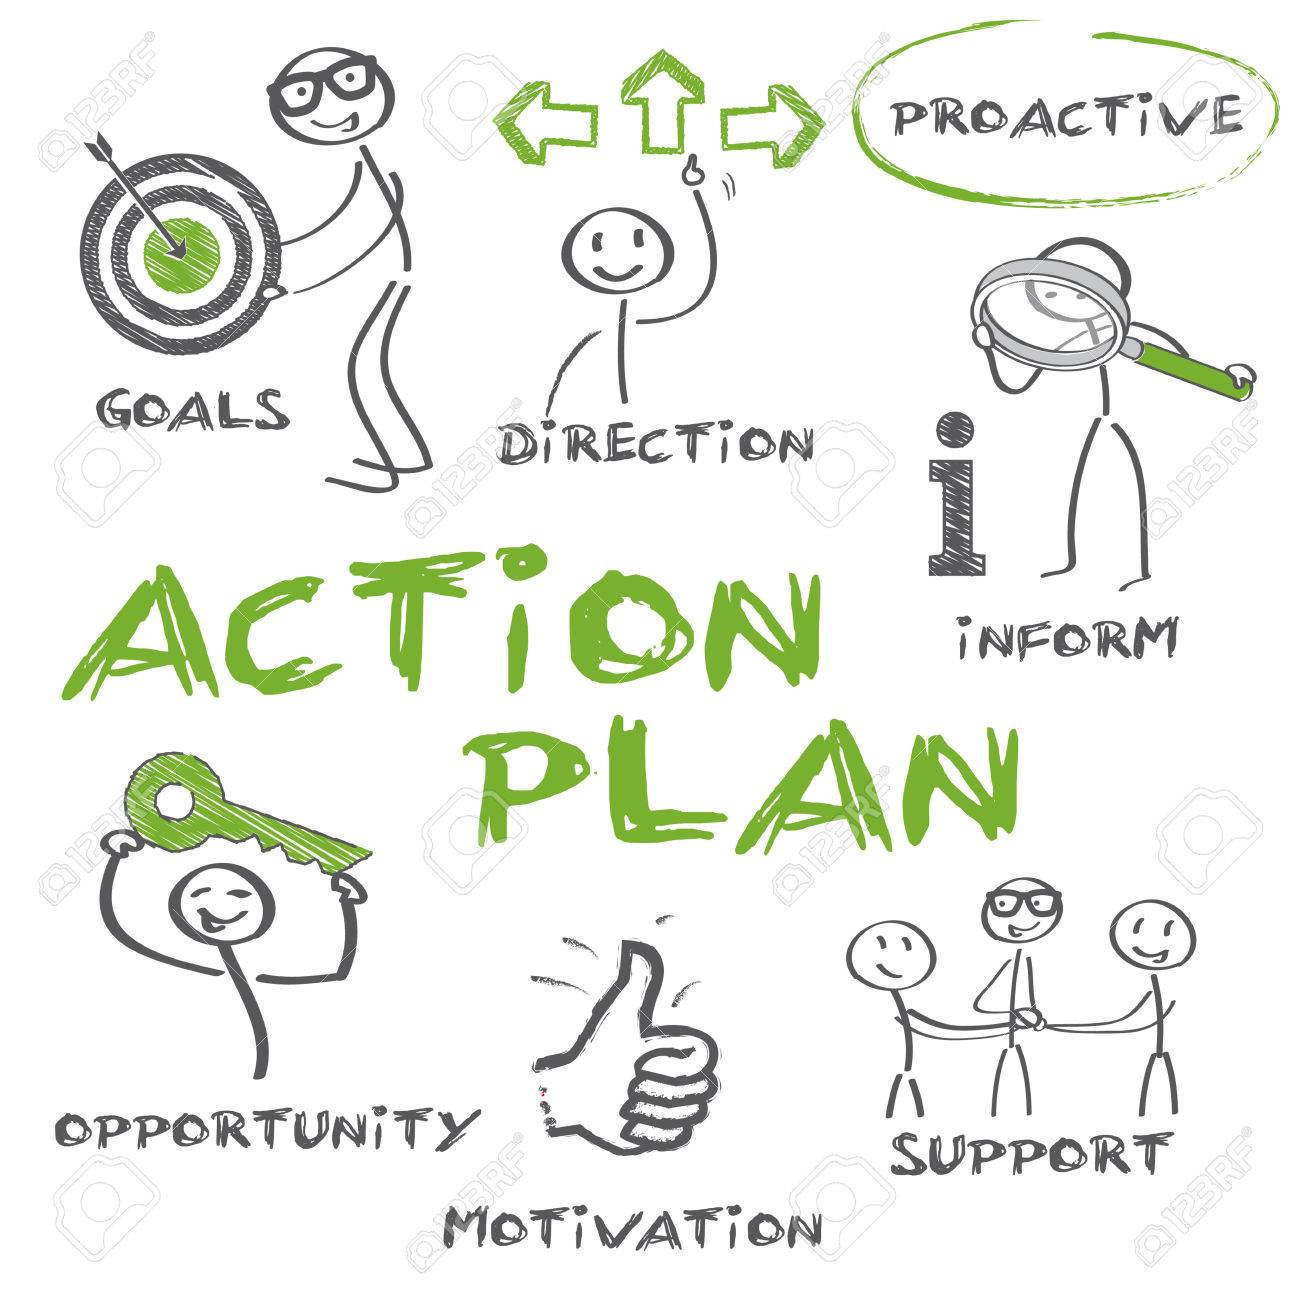 action planning. Vector illustration and stick figures - 79936678